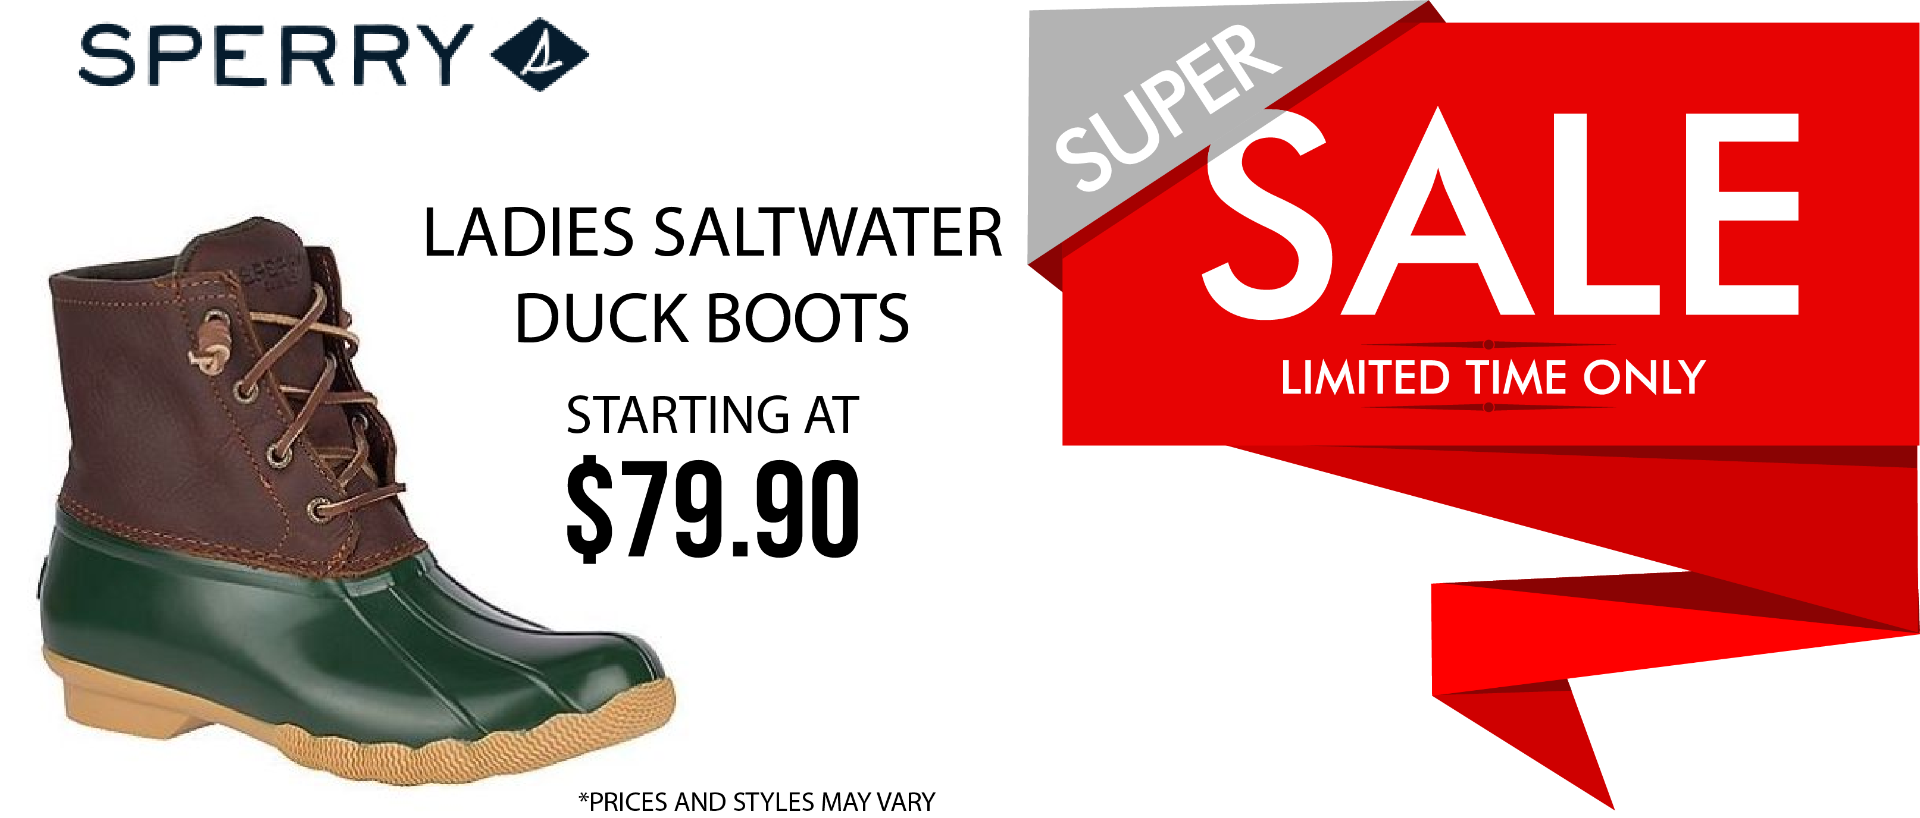 LEBOS CYBER MONDAY SPERRY DUCK BOOTS